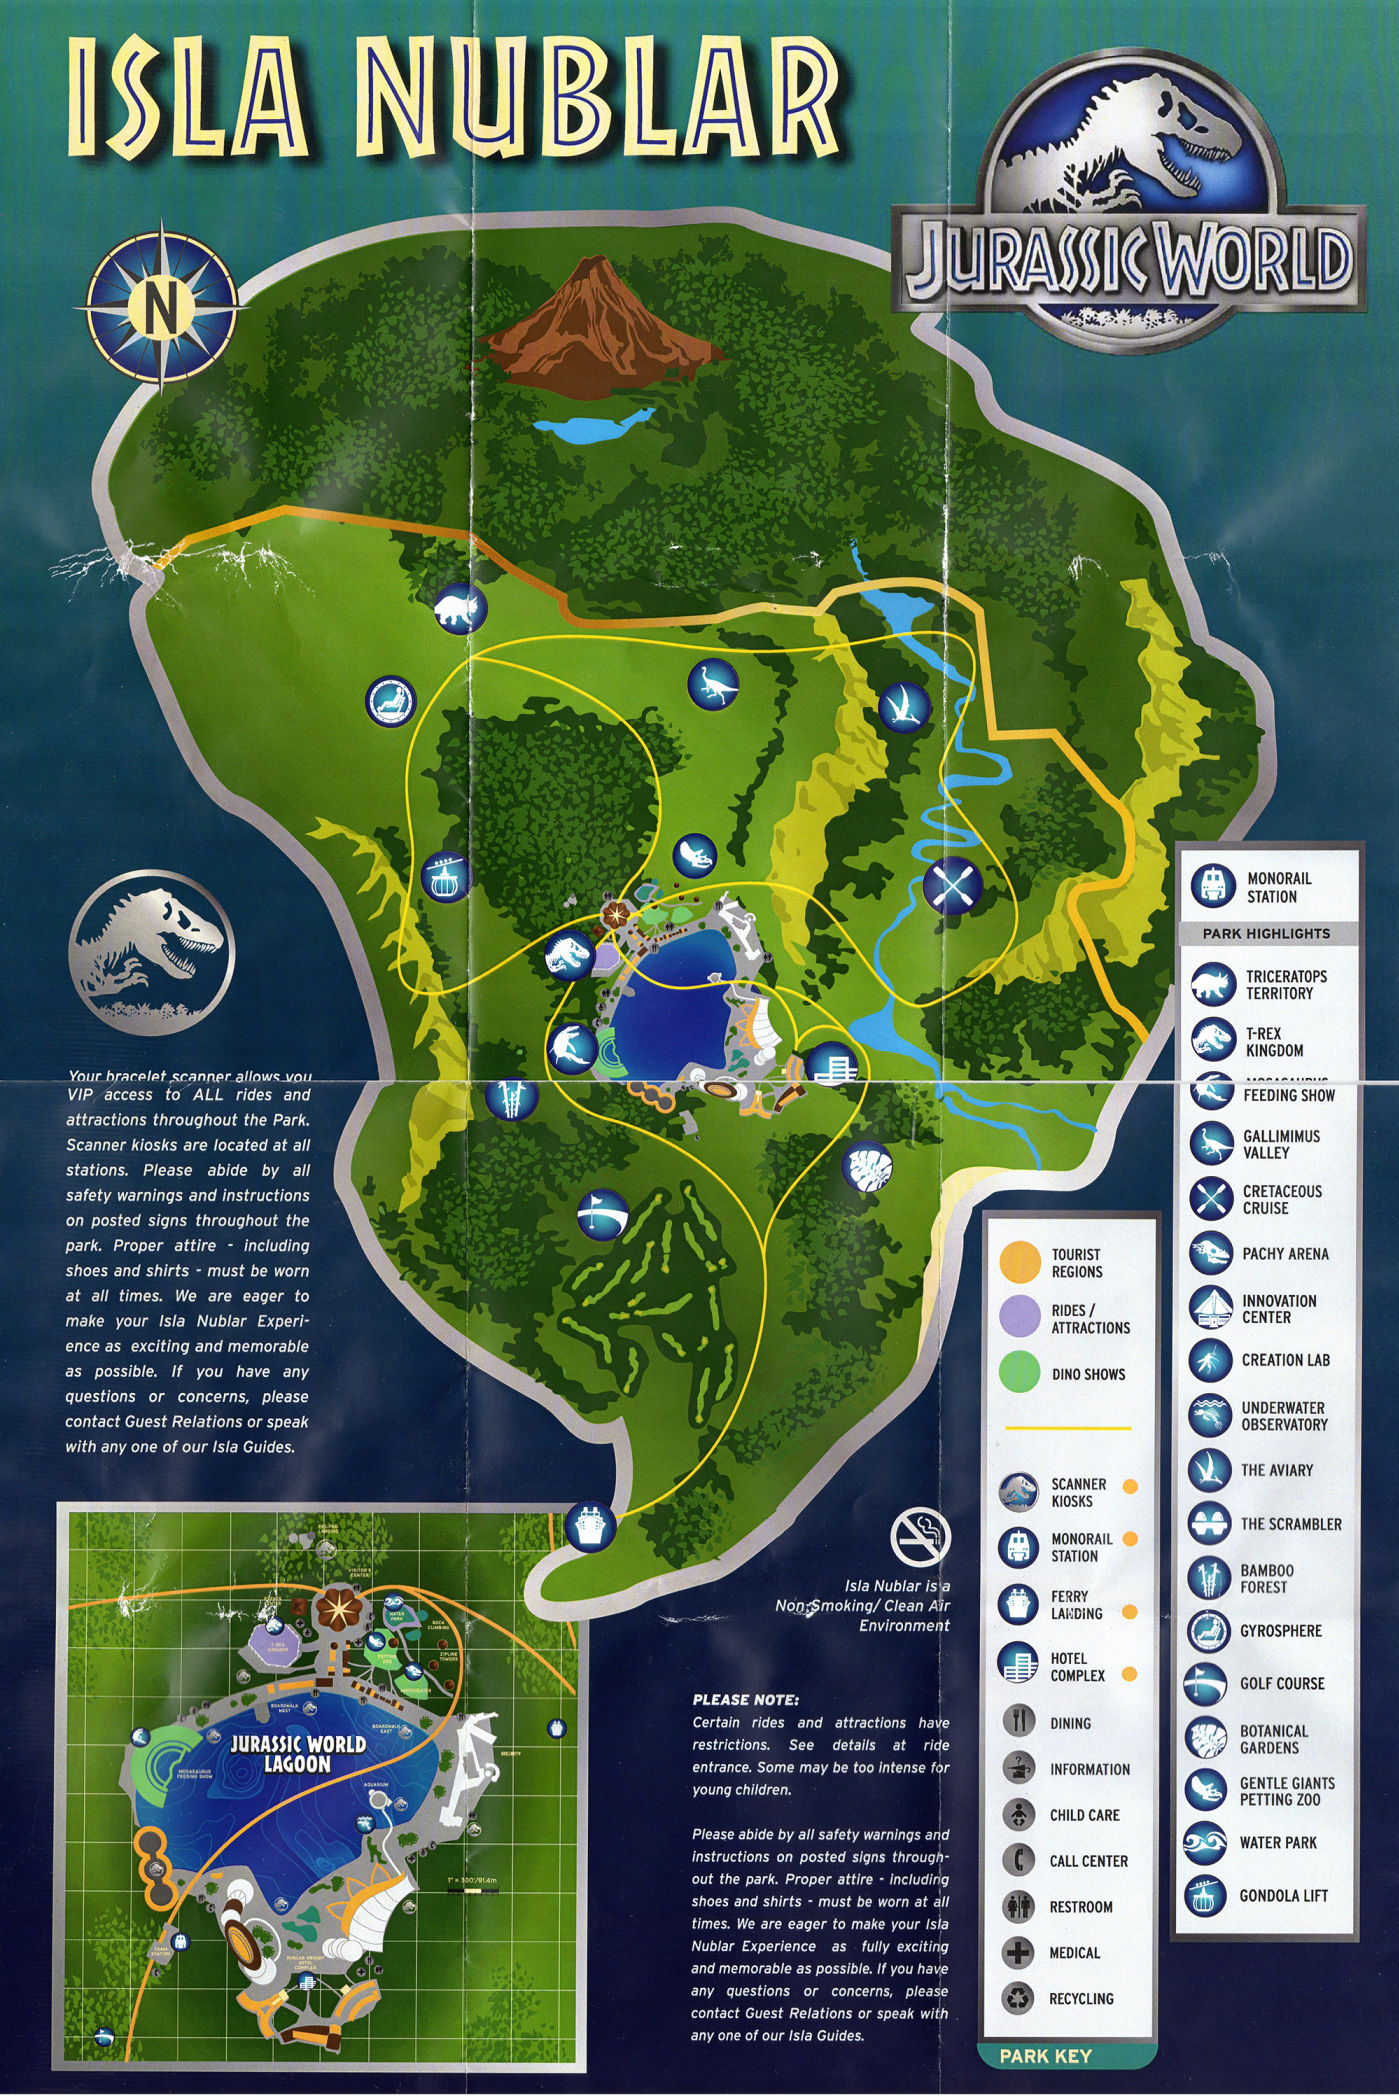 Image jurassic world map fullg jurassic park wiki fandom jurassic world map fullg gumiabroncs Images